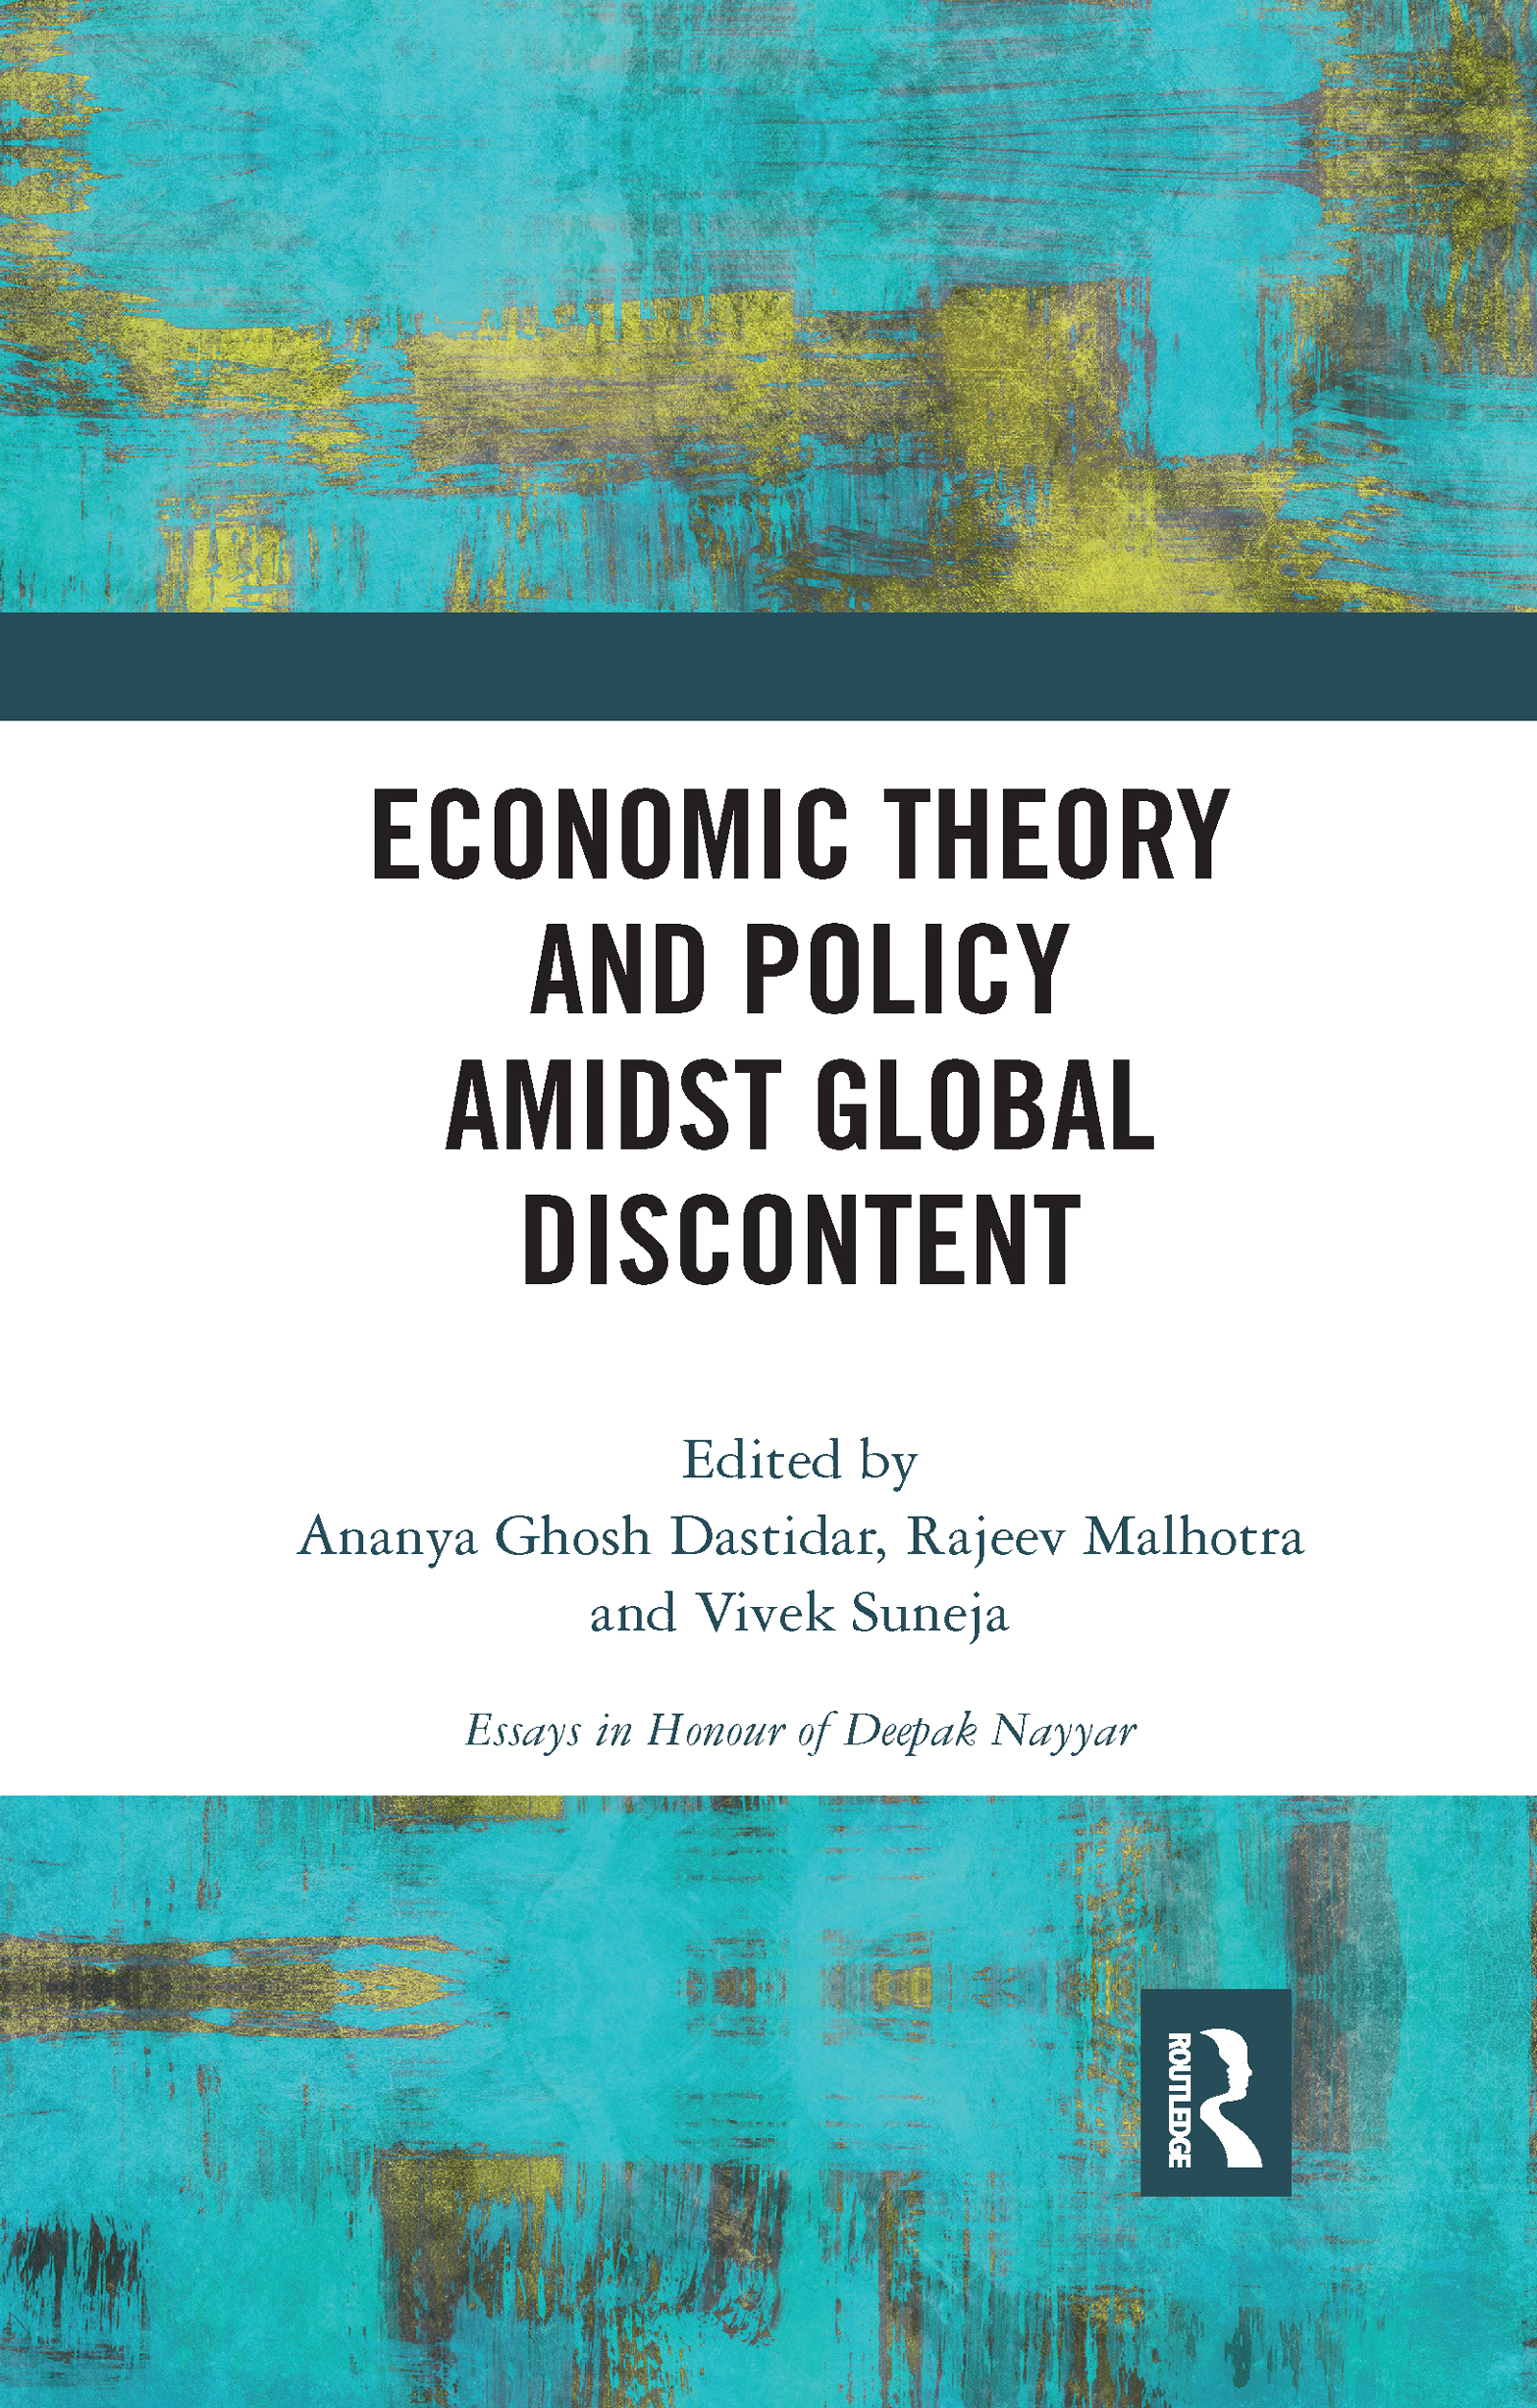 Economic Theory and Policy amidst Global Discontent